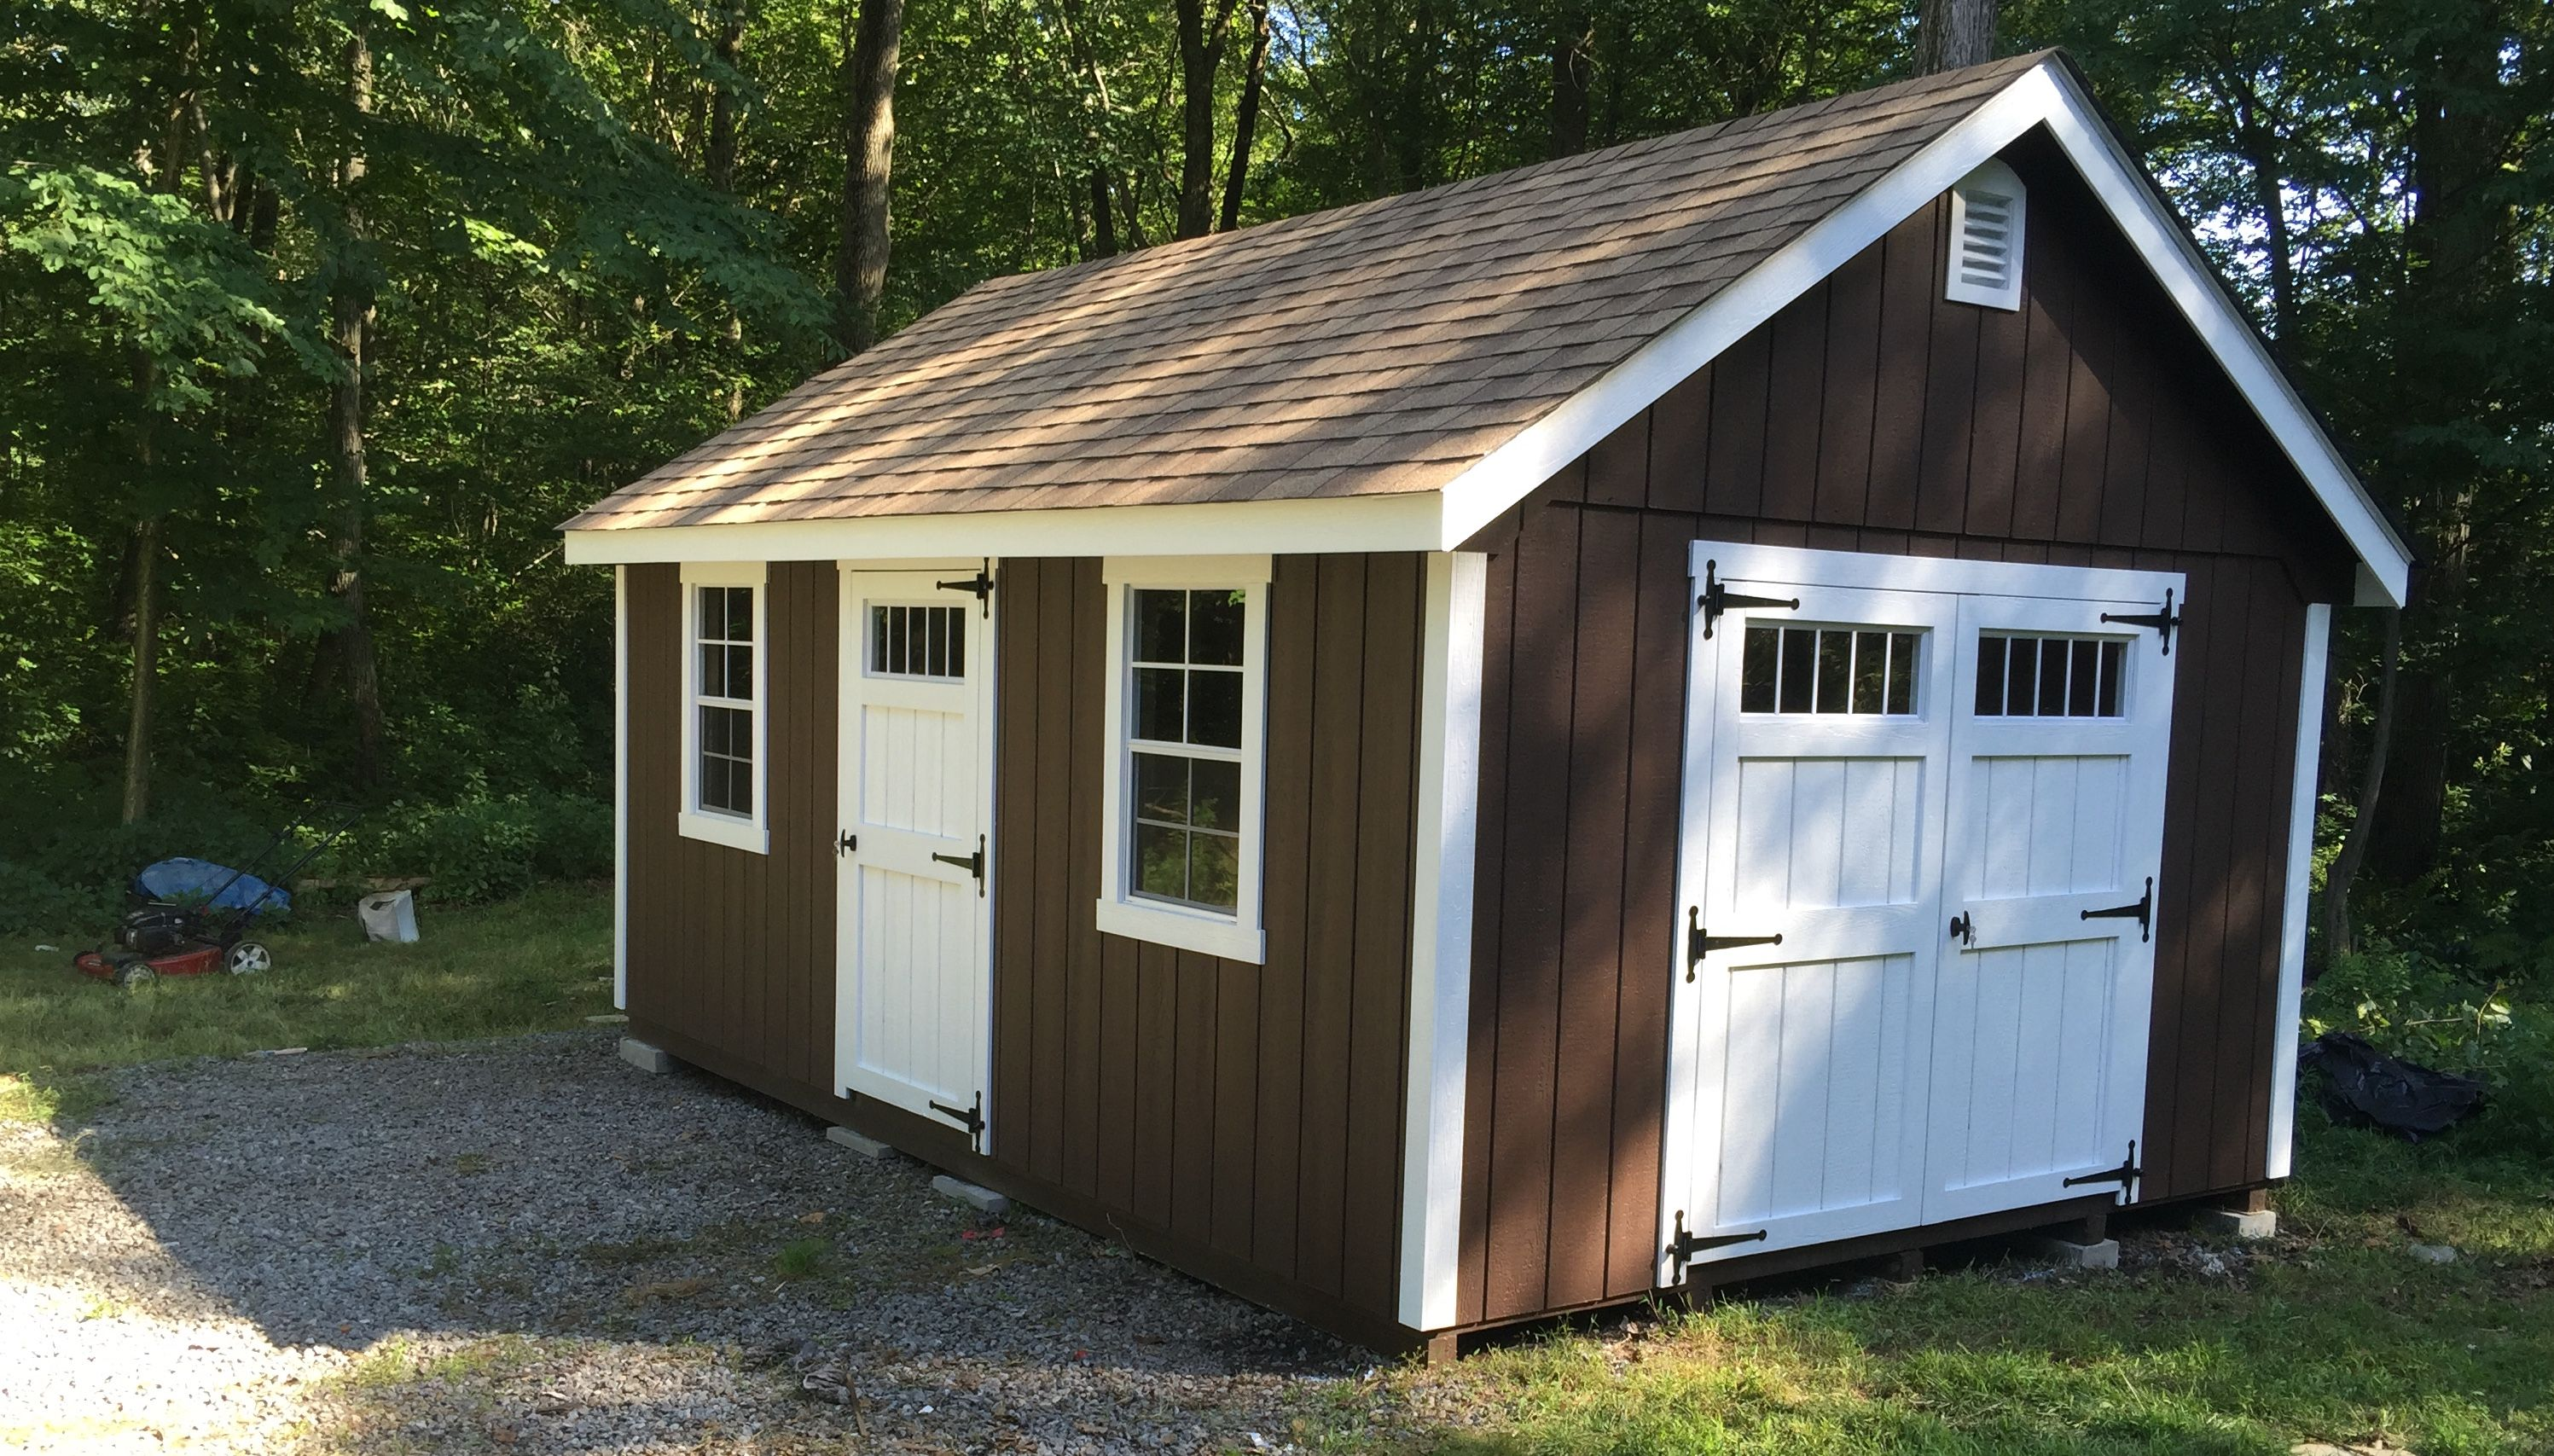 This Custom A Frame Storage Shed From Best In Backyards Of Ny And Ct Features Bright White Trim And Doors Against A Deep Brow Outdoor Sheds Backyard Sheds Shed